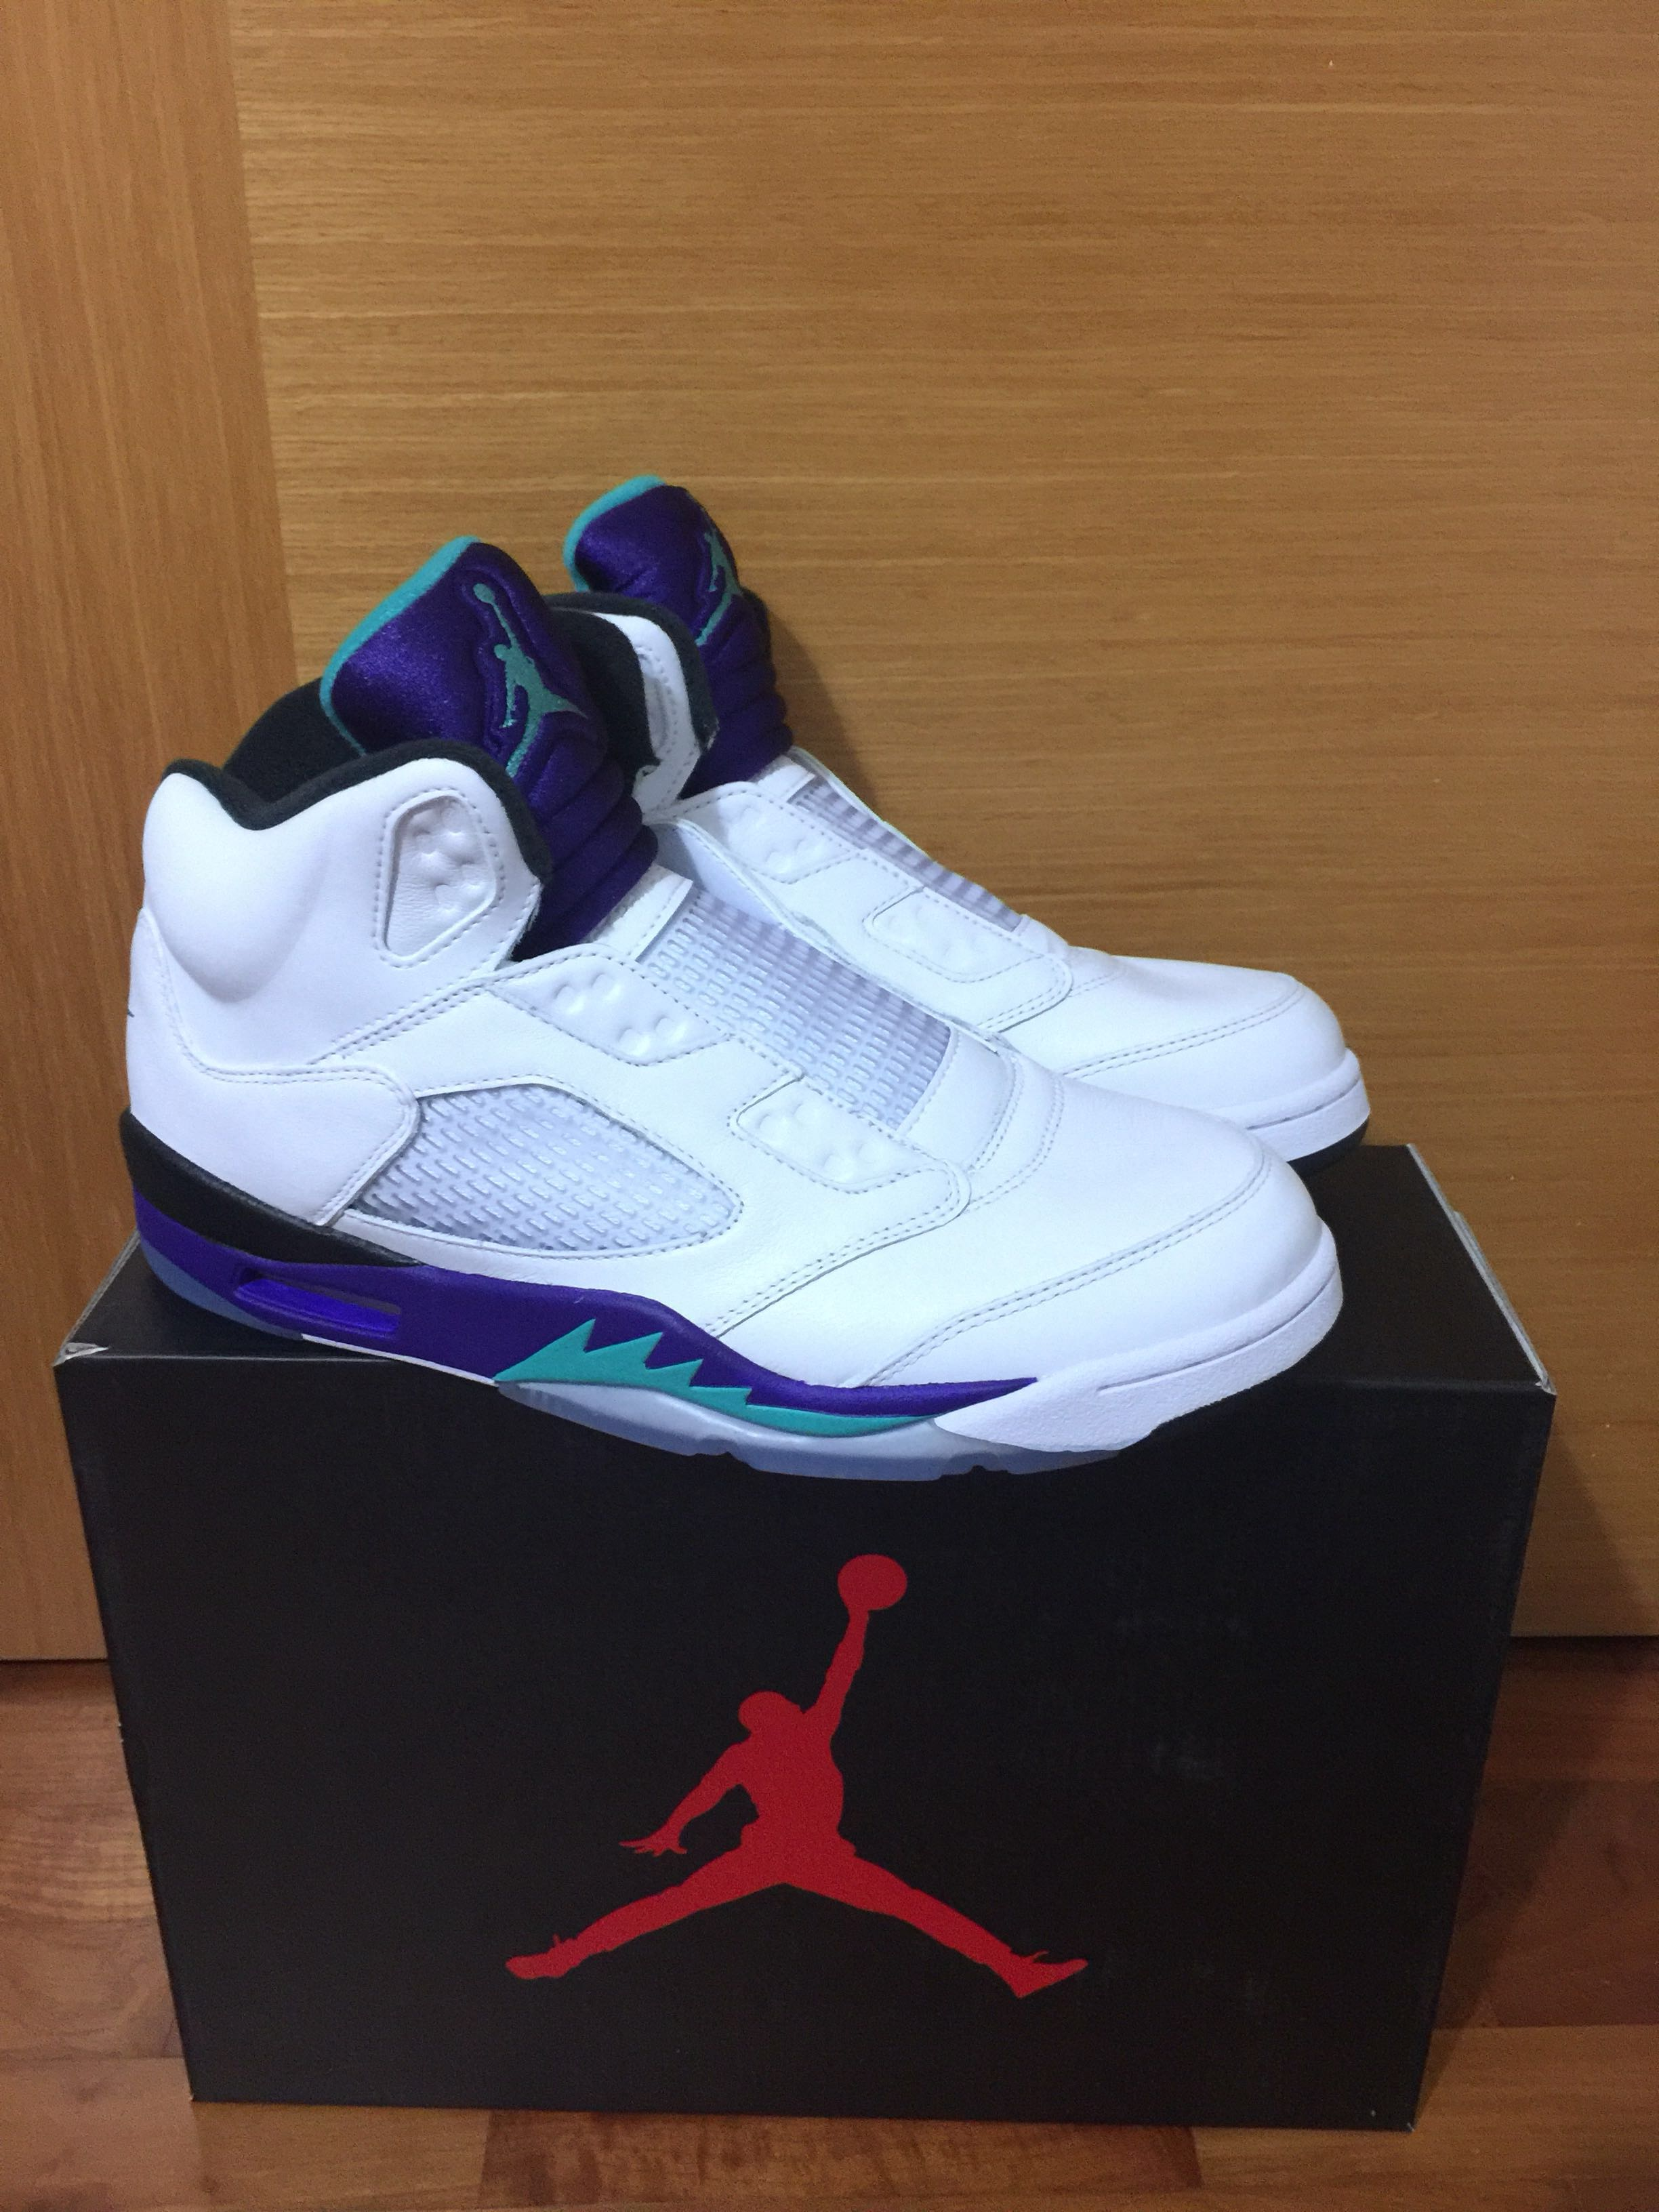 0b48d192d80e 2018 Nike Air Jordan 5 V Retro NRG Fresh Prince NEW Grape AV3919-135 ...